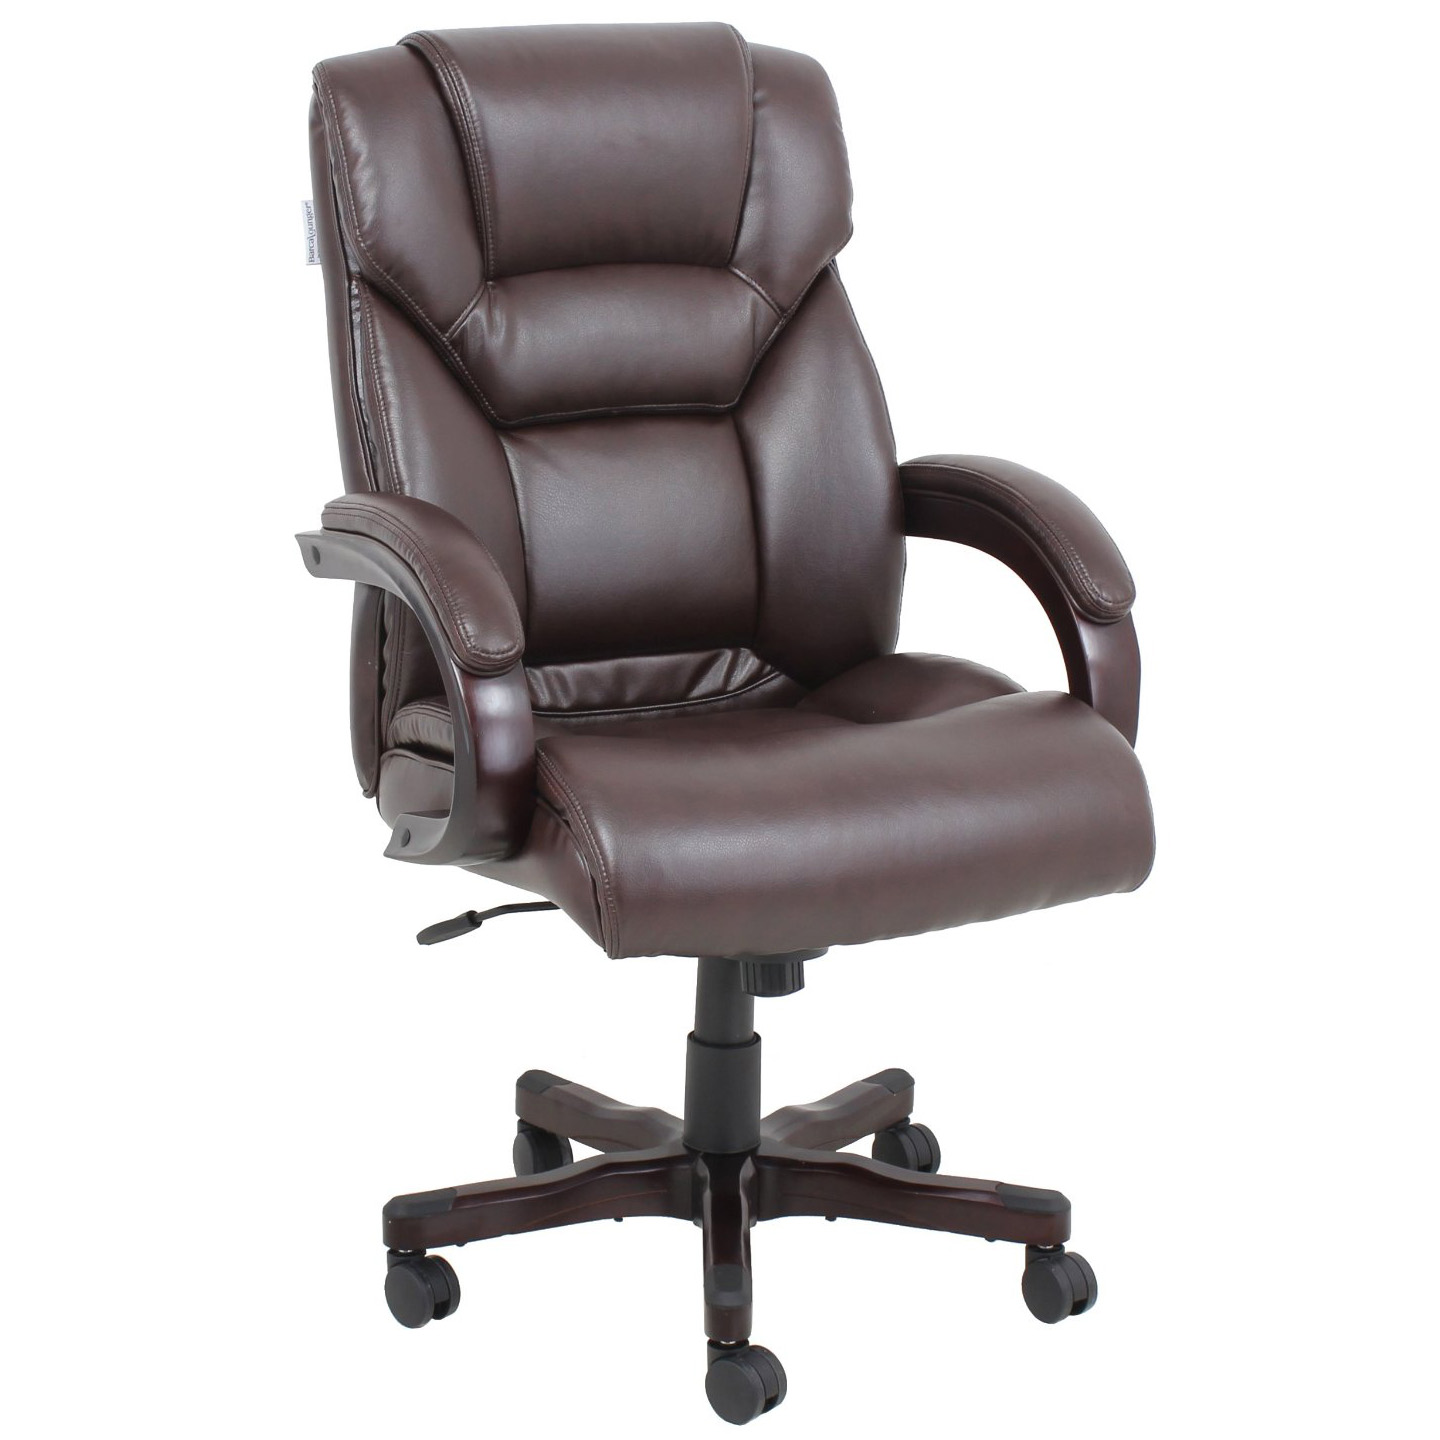 Home Office Desk Chair Barcalounger Neptune Ii Home Office Desk Chair Recliner